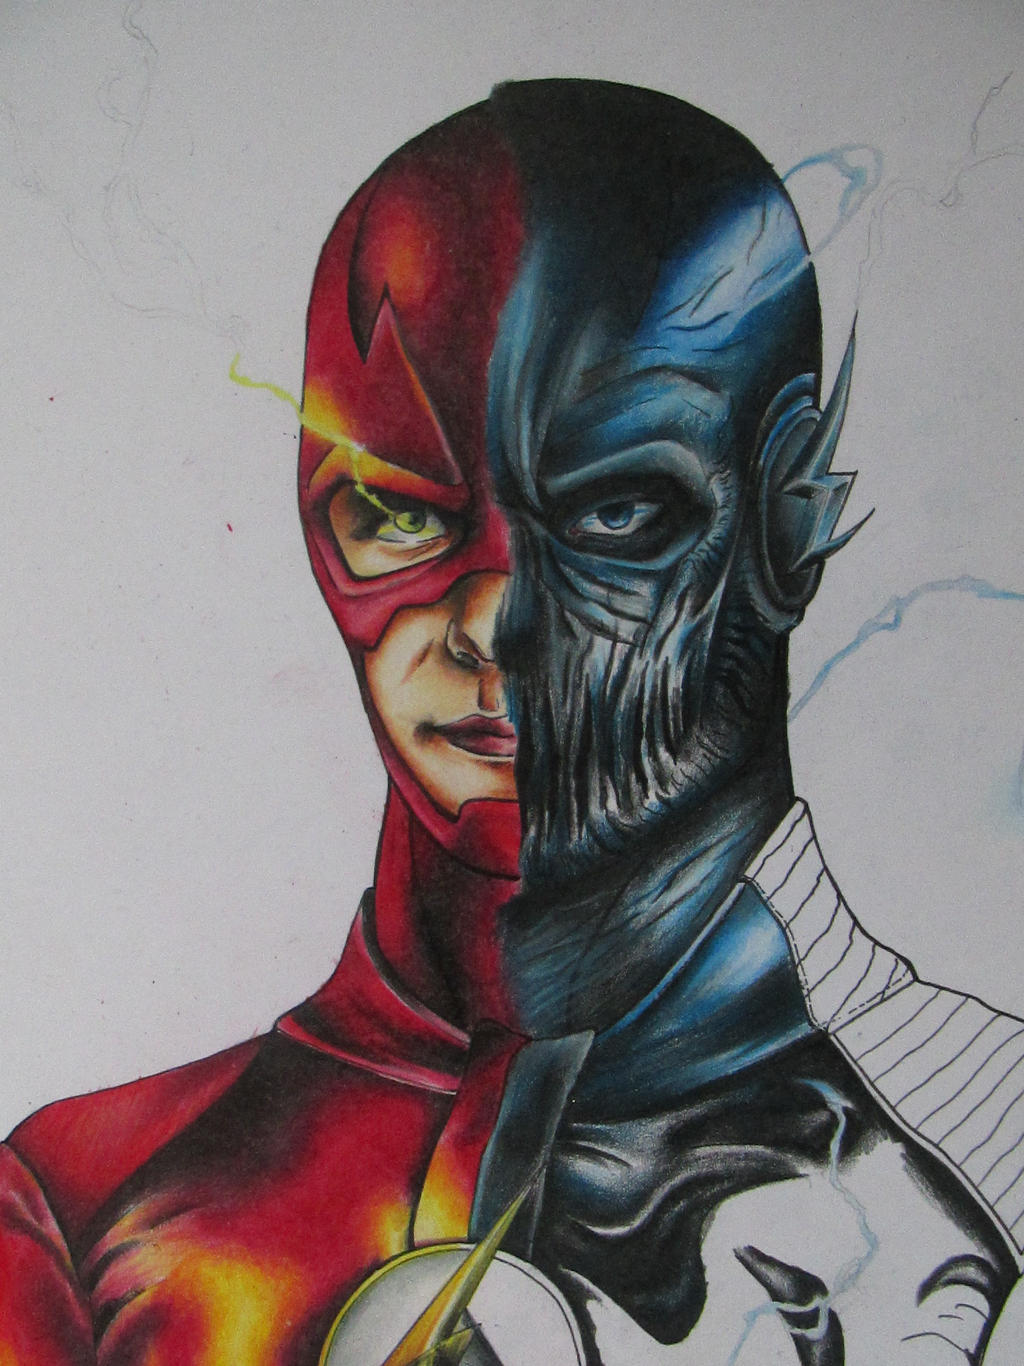 Wip The Flash Vs Zoom By Moonsnake12 On Deviantart